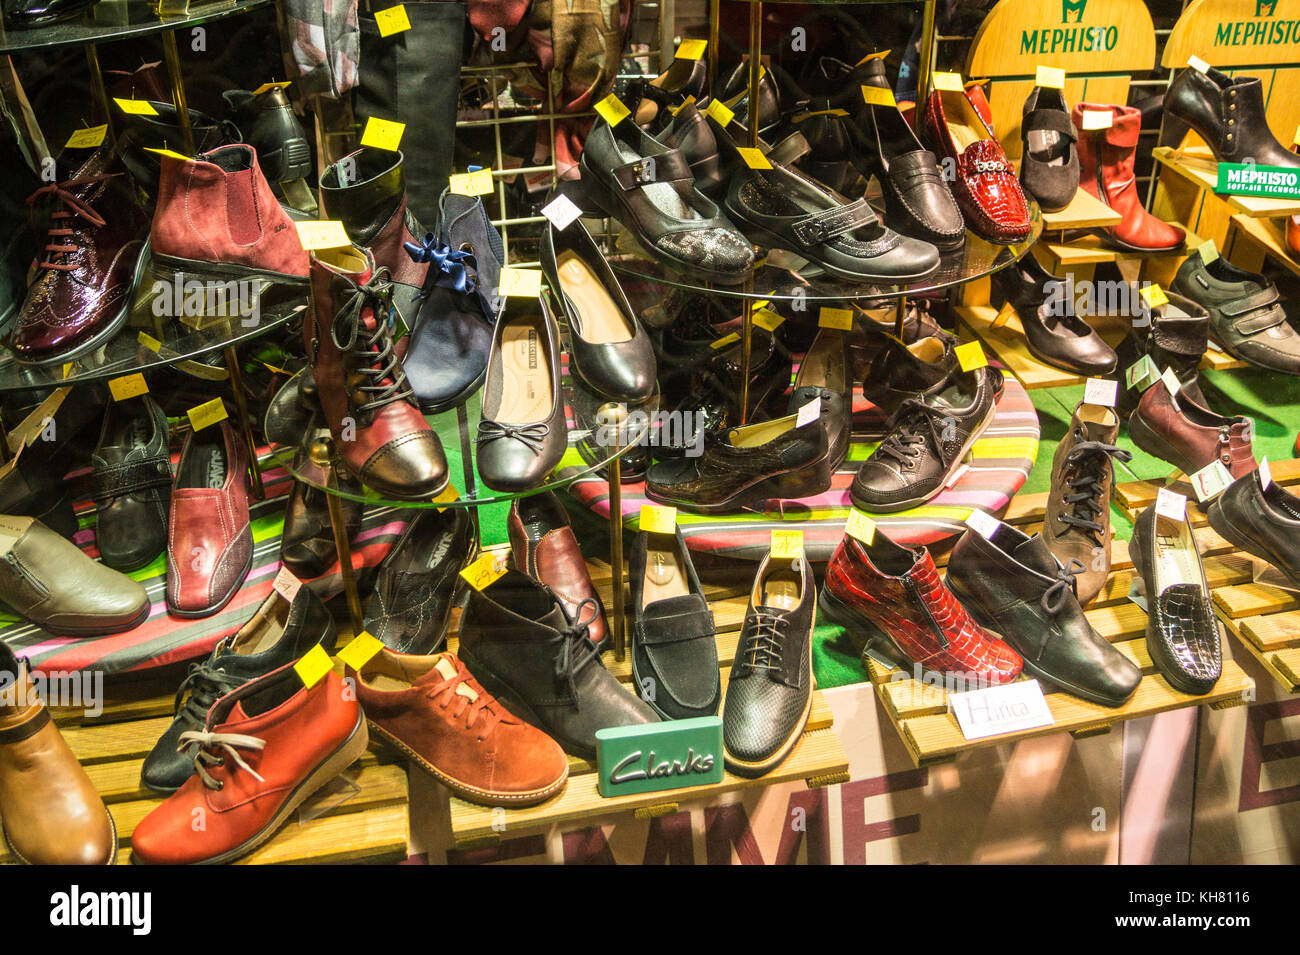 Display of Clarks and Mephisto brand shoes in a shop window, Toulouse, Occitanie, France Stock Photo